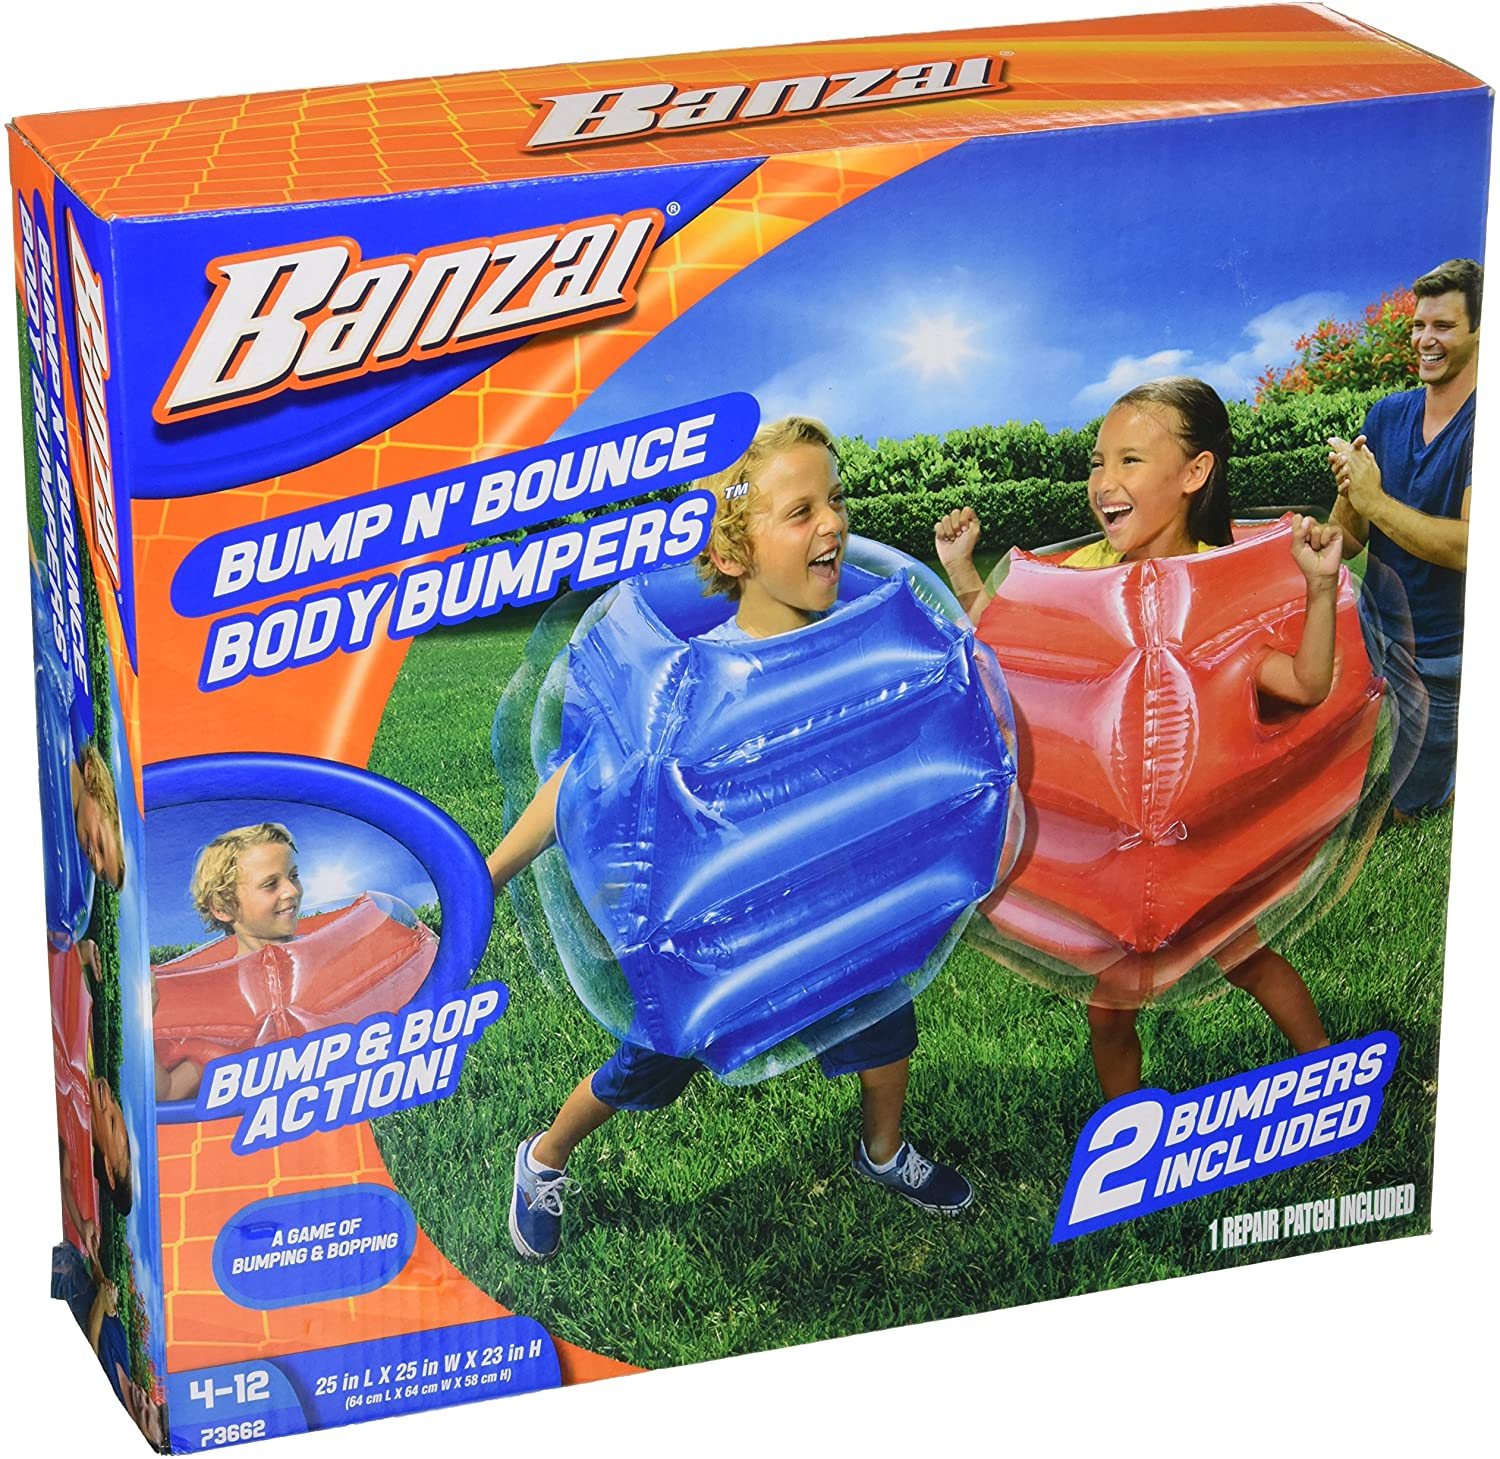 Bring bumper cars right to your backyard! Simply replace the cars with these inflatable body bumper suits. The blow-up suits are super safe and durable (but a repair patch is included, just in case) and will give your kids hours of fun. This outdoor game may seem a little odd, but if you have rambunctious kiddos who love to run and bop around, these body bumpers can help them burn off that pent-up energy. (Amazon; $30)